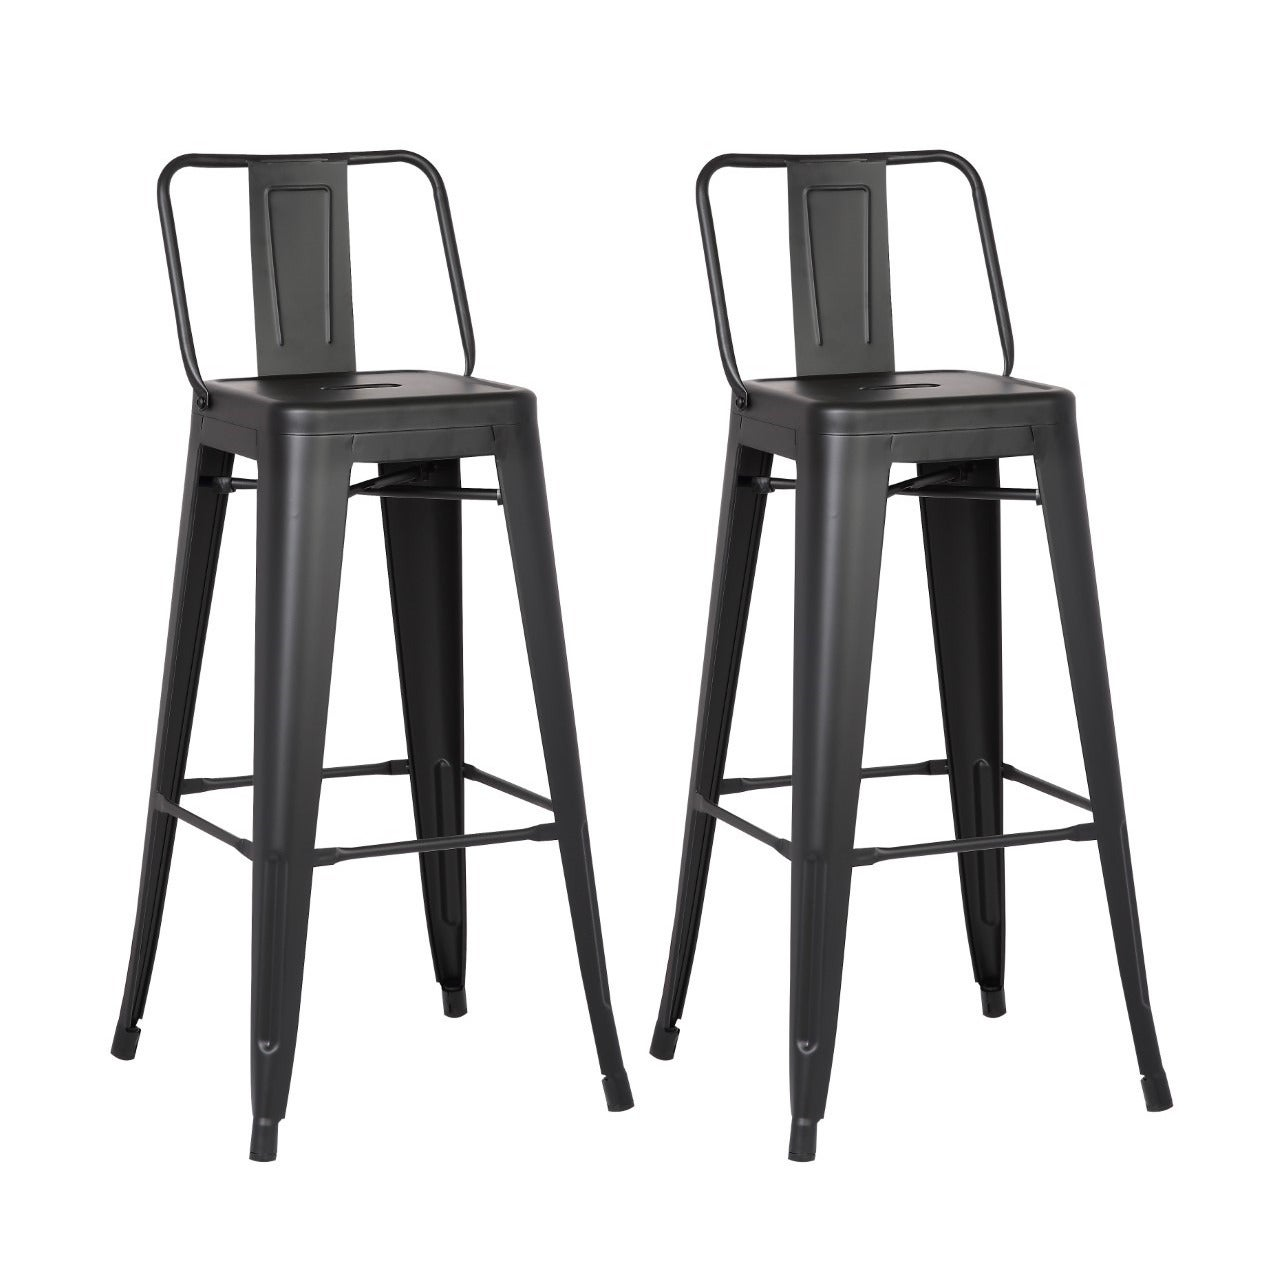 Steel 24 inch bar stool set of 2